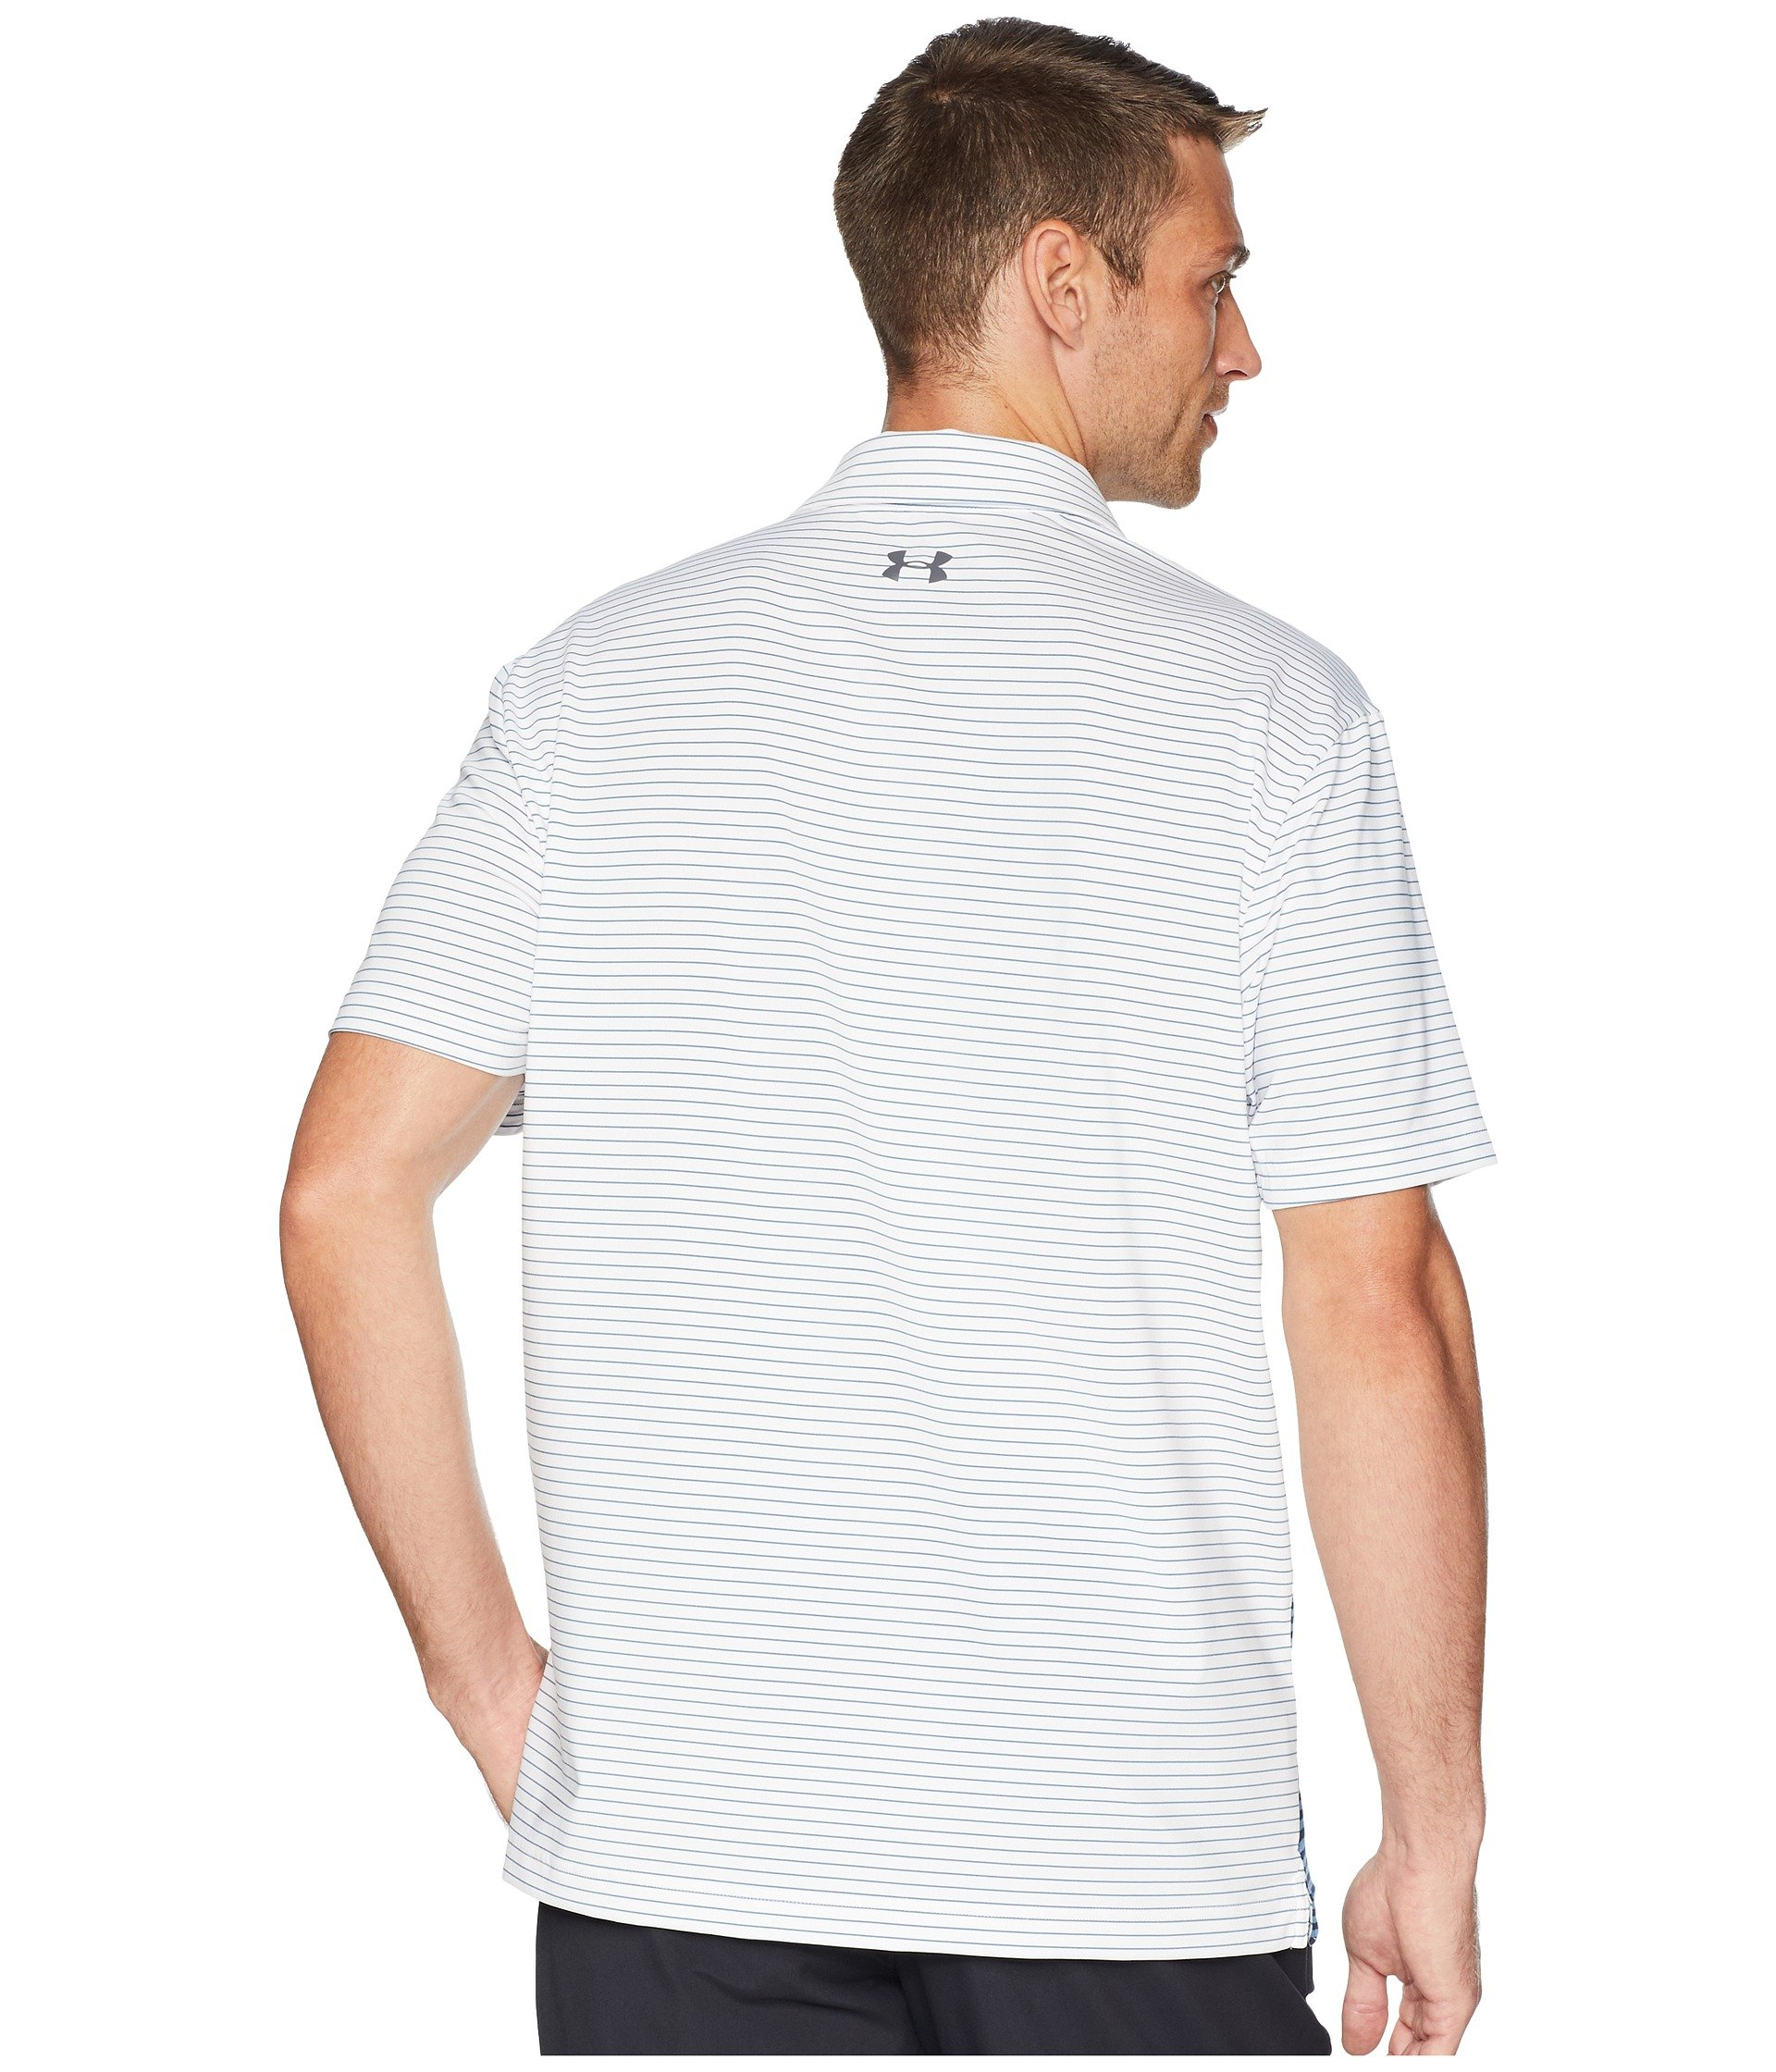 Under Armour Men's Playoff Polo, White (124)/Rhino Gray, X-Small by Under Armour (Image #4)